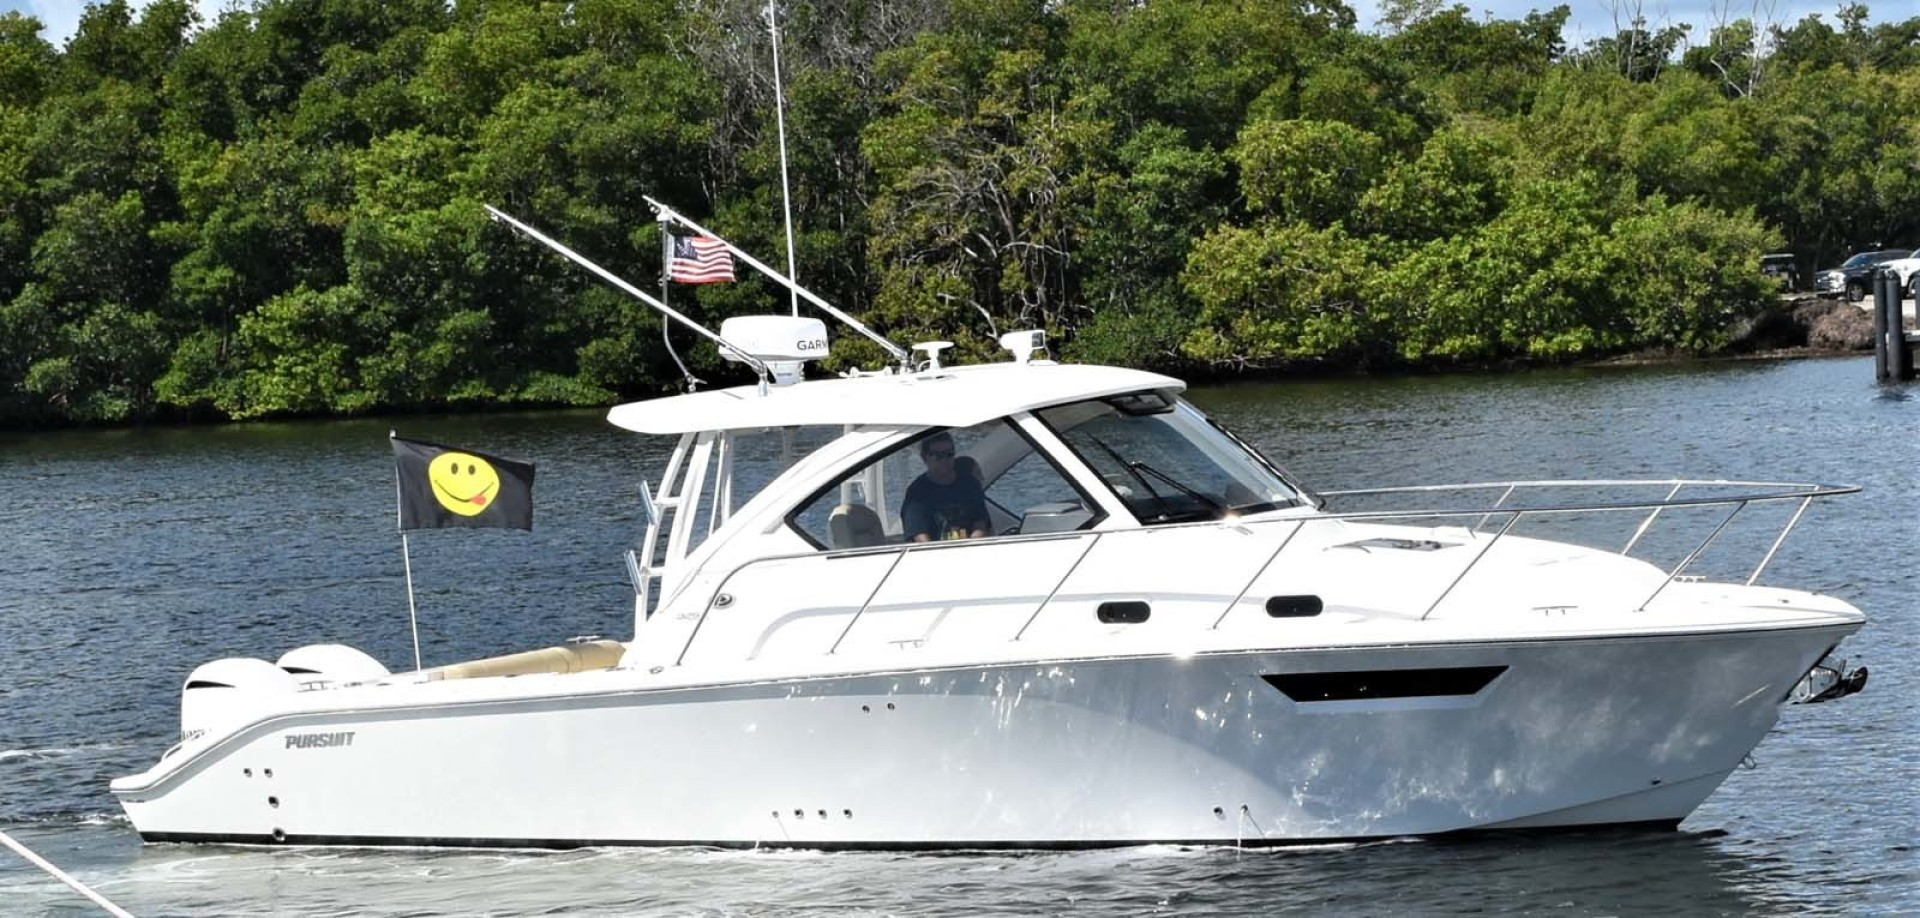 Pursuit-325 Offshore 2020-Coo Coo Miami-Florida-United States-Starboard Profile-1475269 | Thumbnail